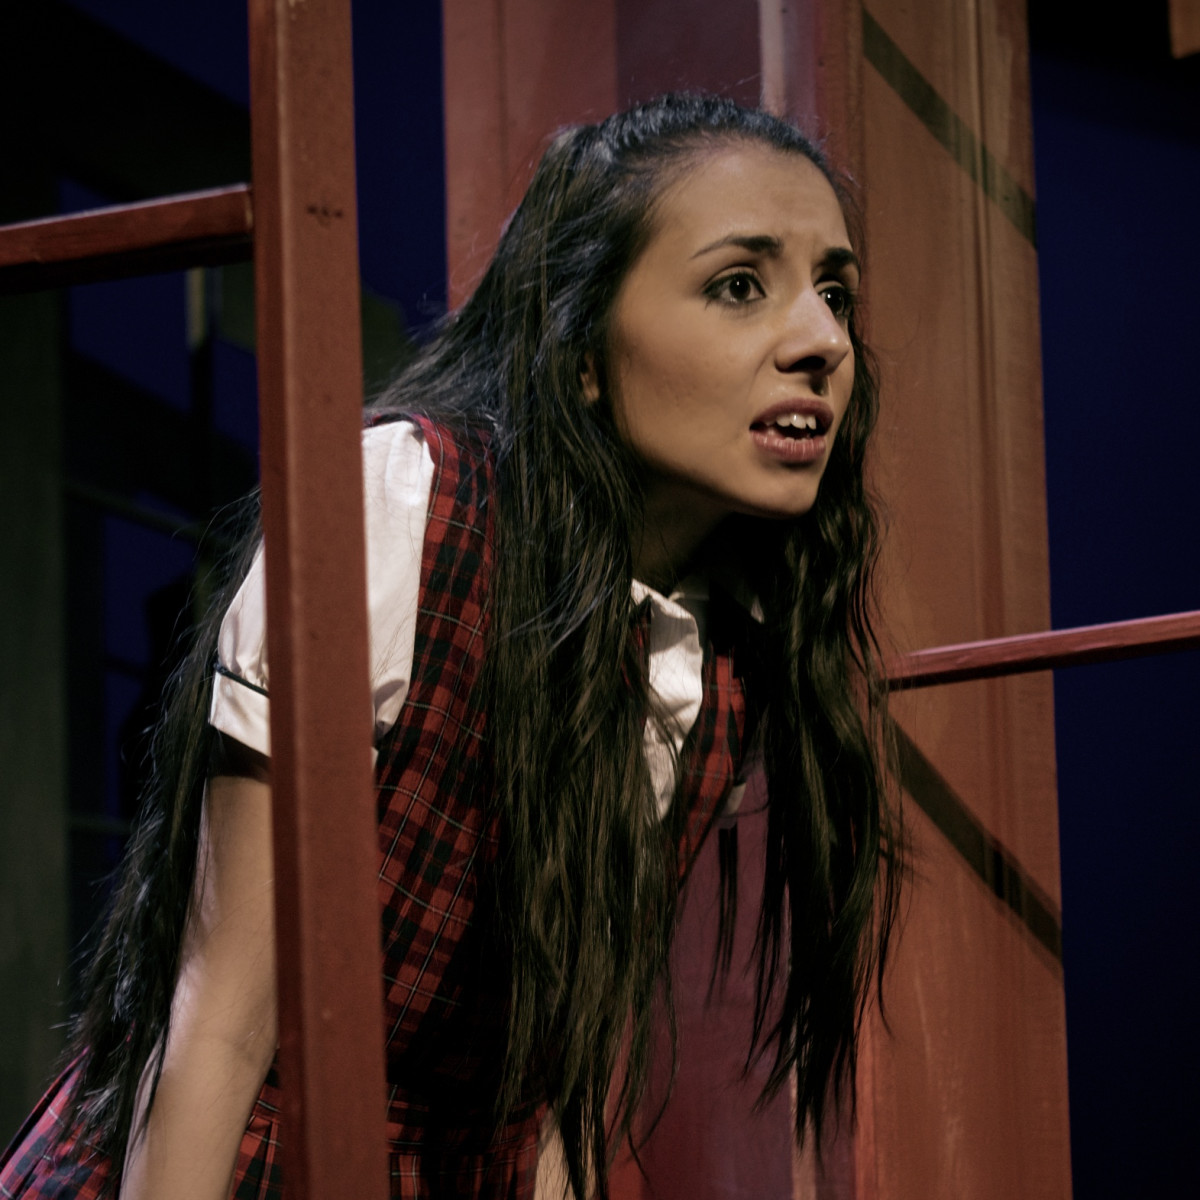 Cara Mía Theatre's 2011 production of The House on Mango Street